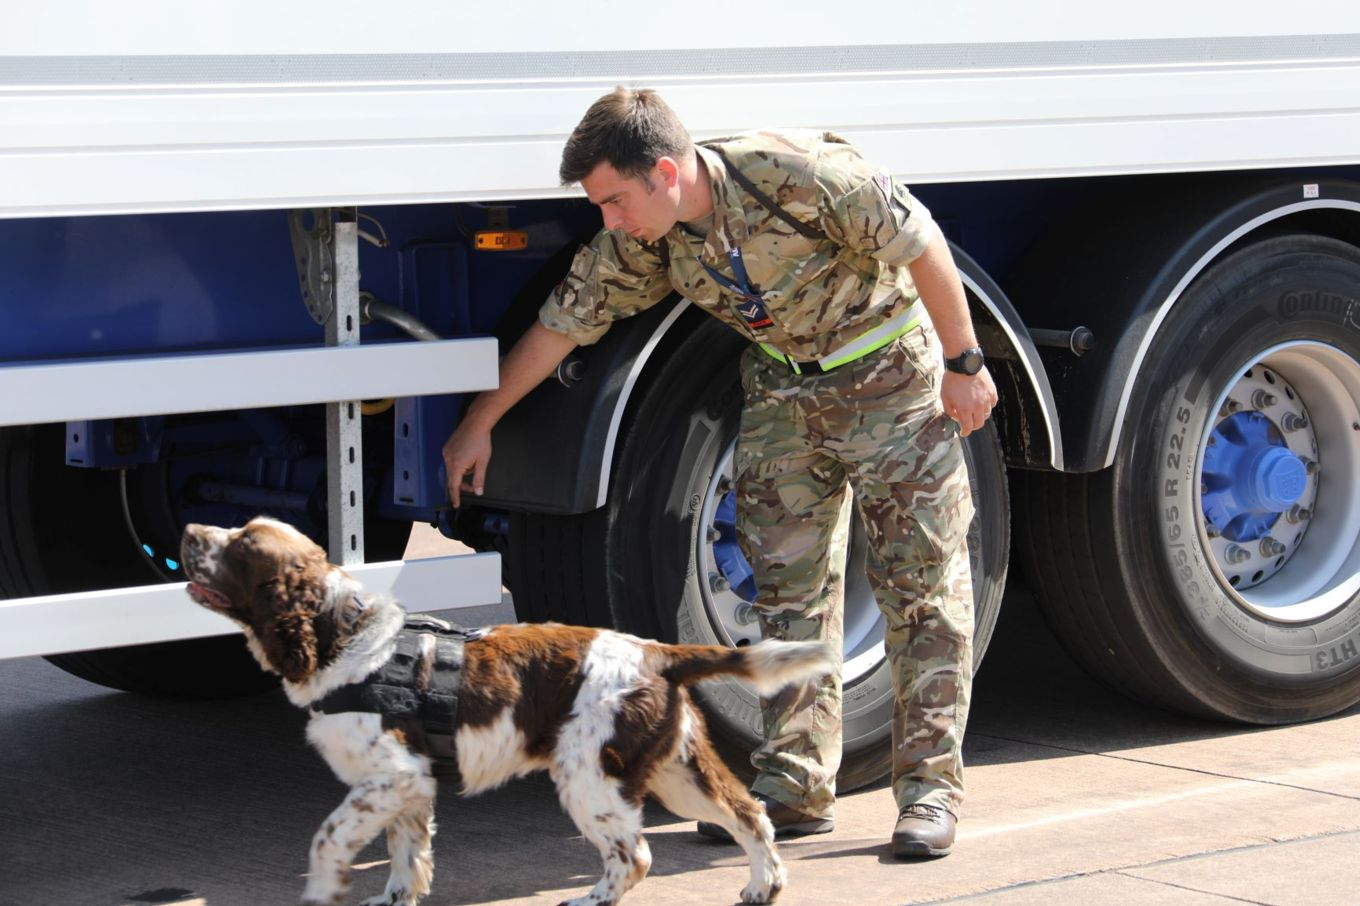 Cpl Matt Butler with Arms Explosives Search Dog Johnny searching a heavy goods vehicle, prior to entering the RIAT complex